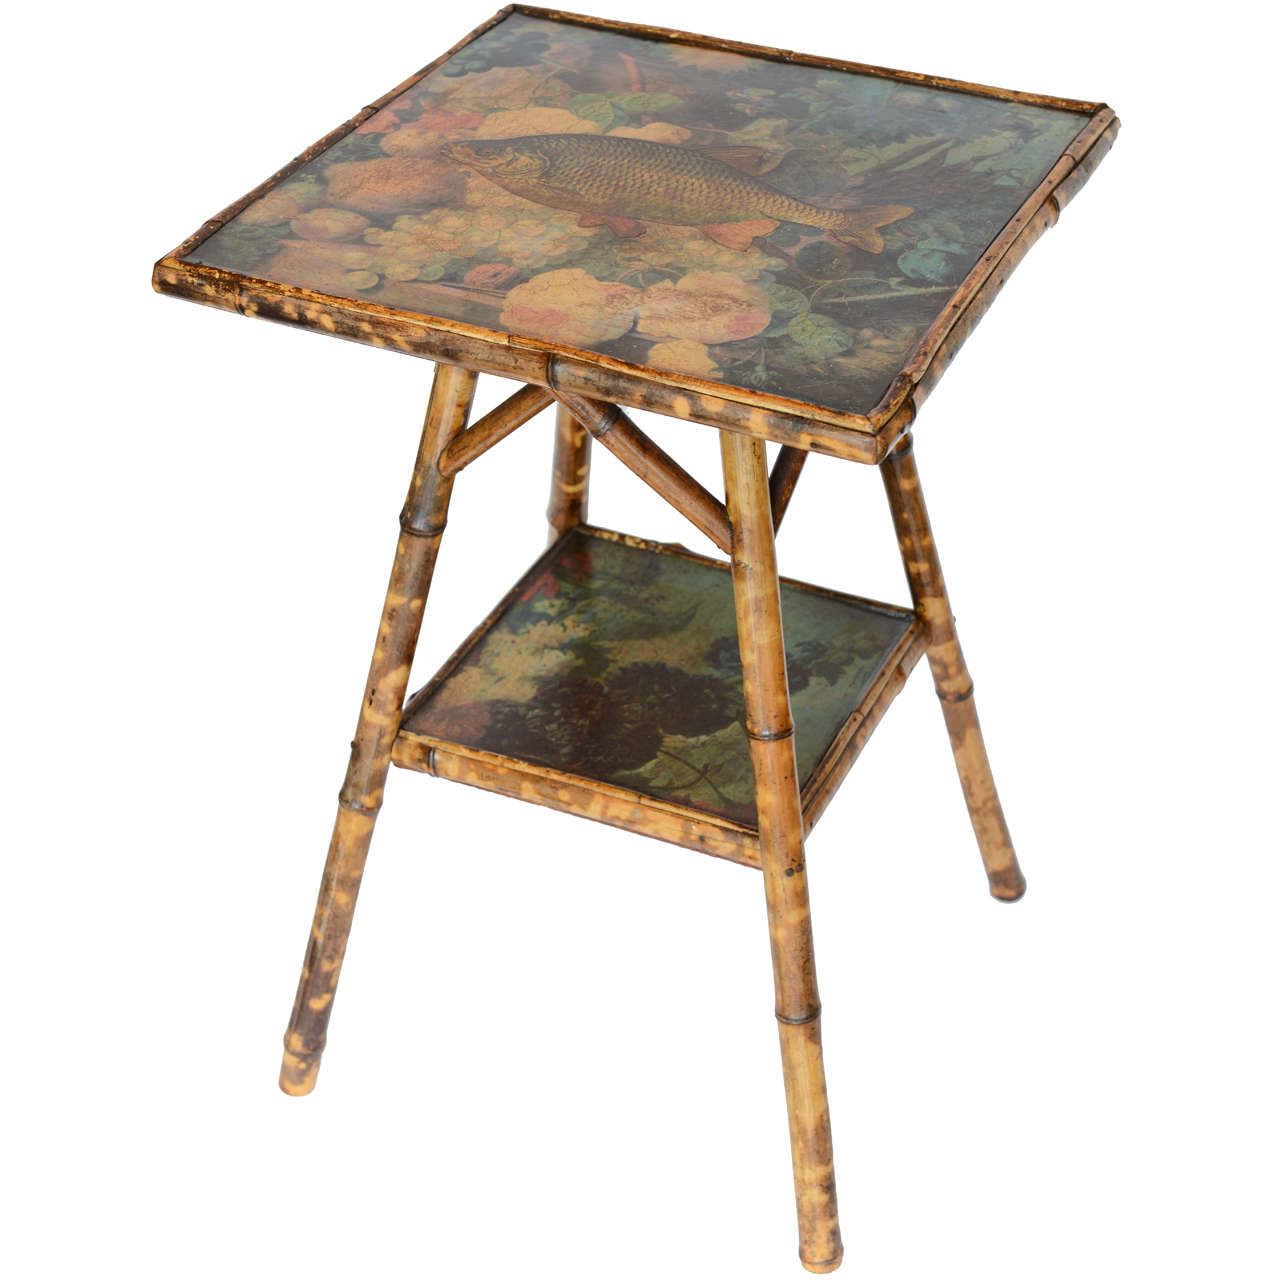 Antique Two-Tier Decoupage Bamboo Table